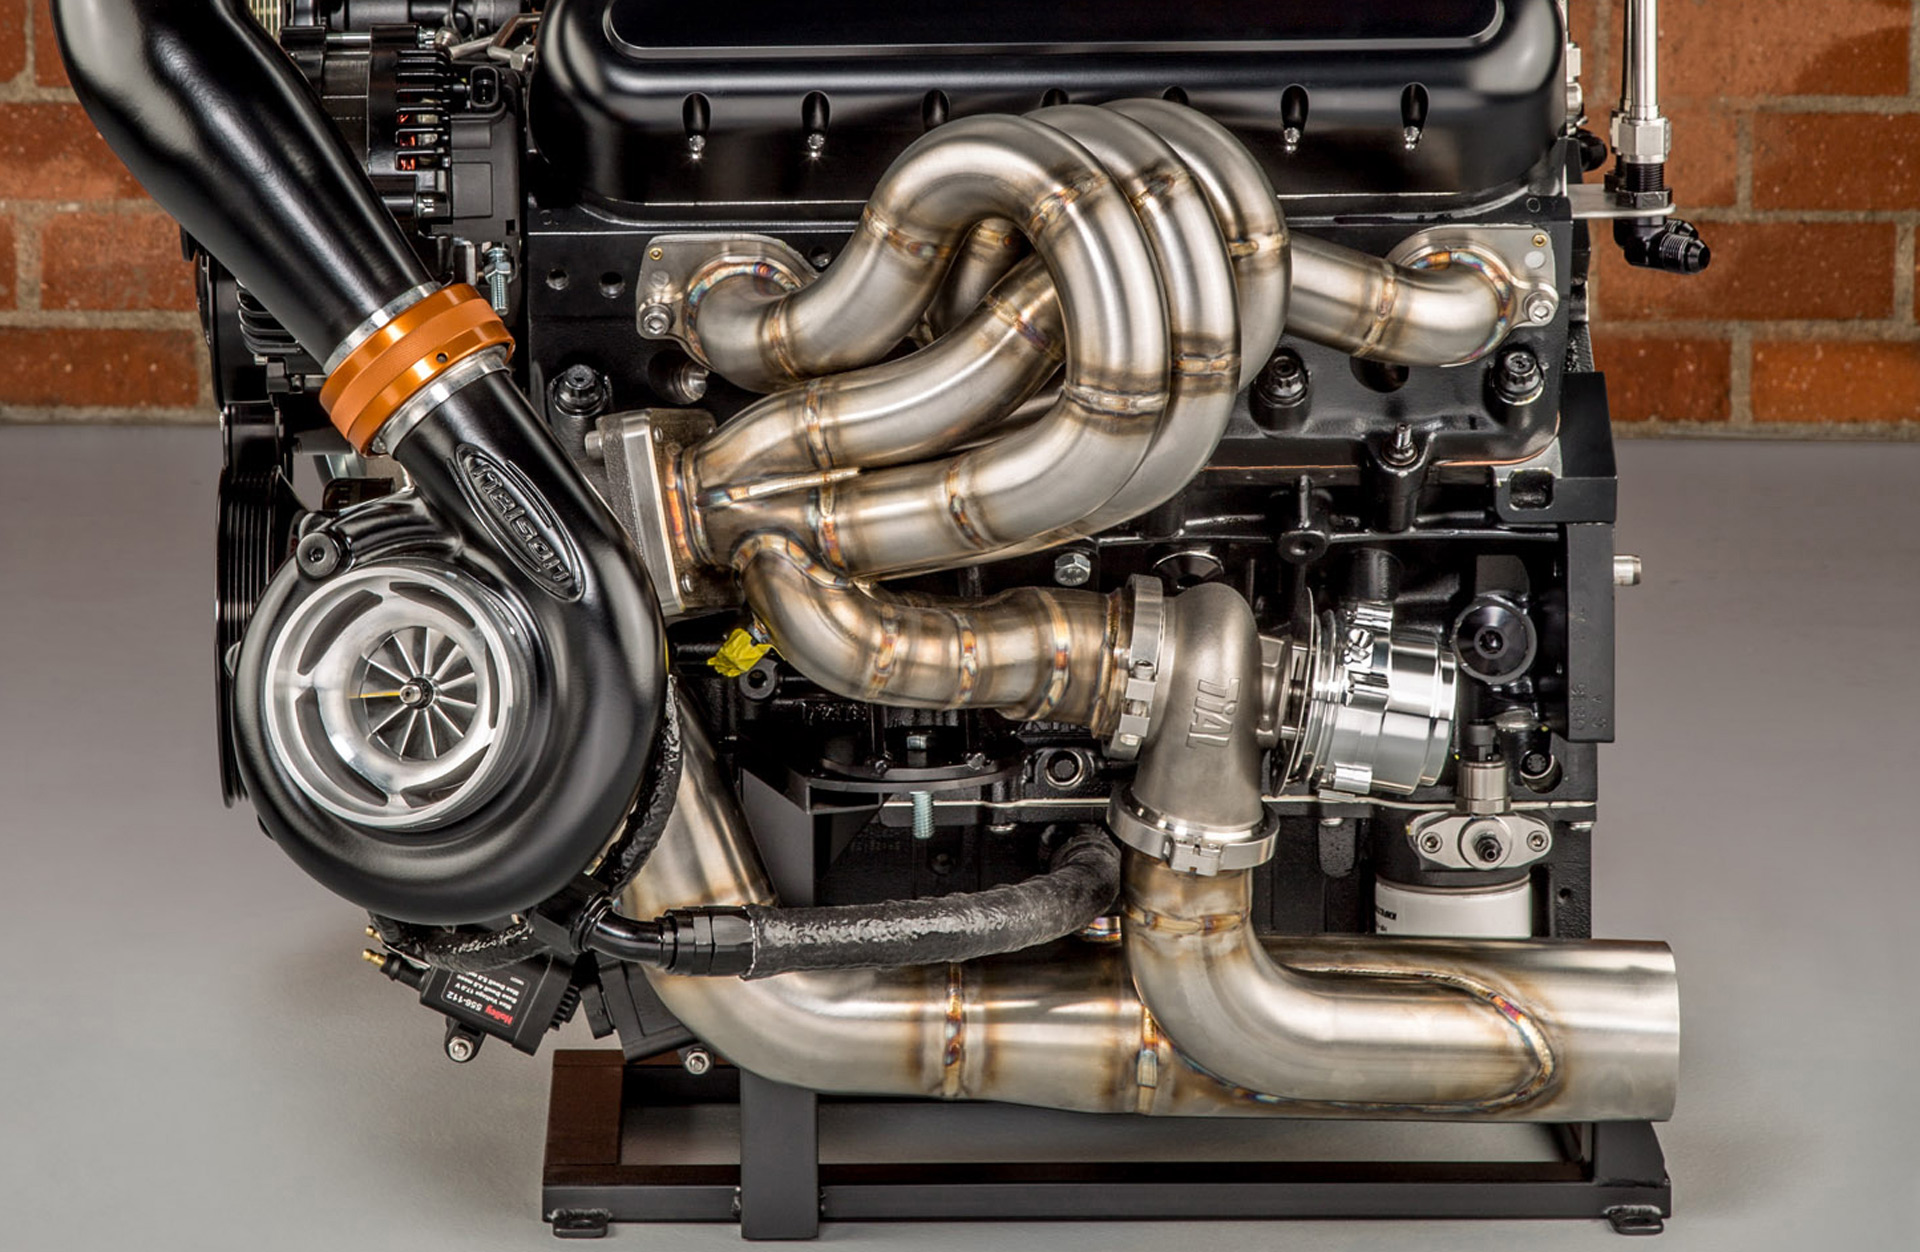 SSC_Tuatara_engine_0007